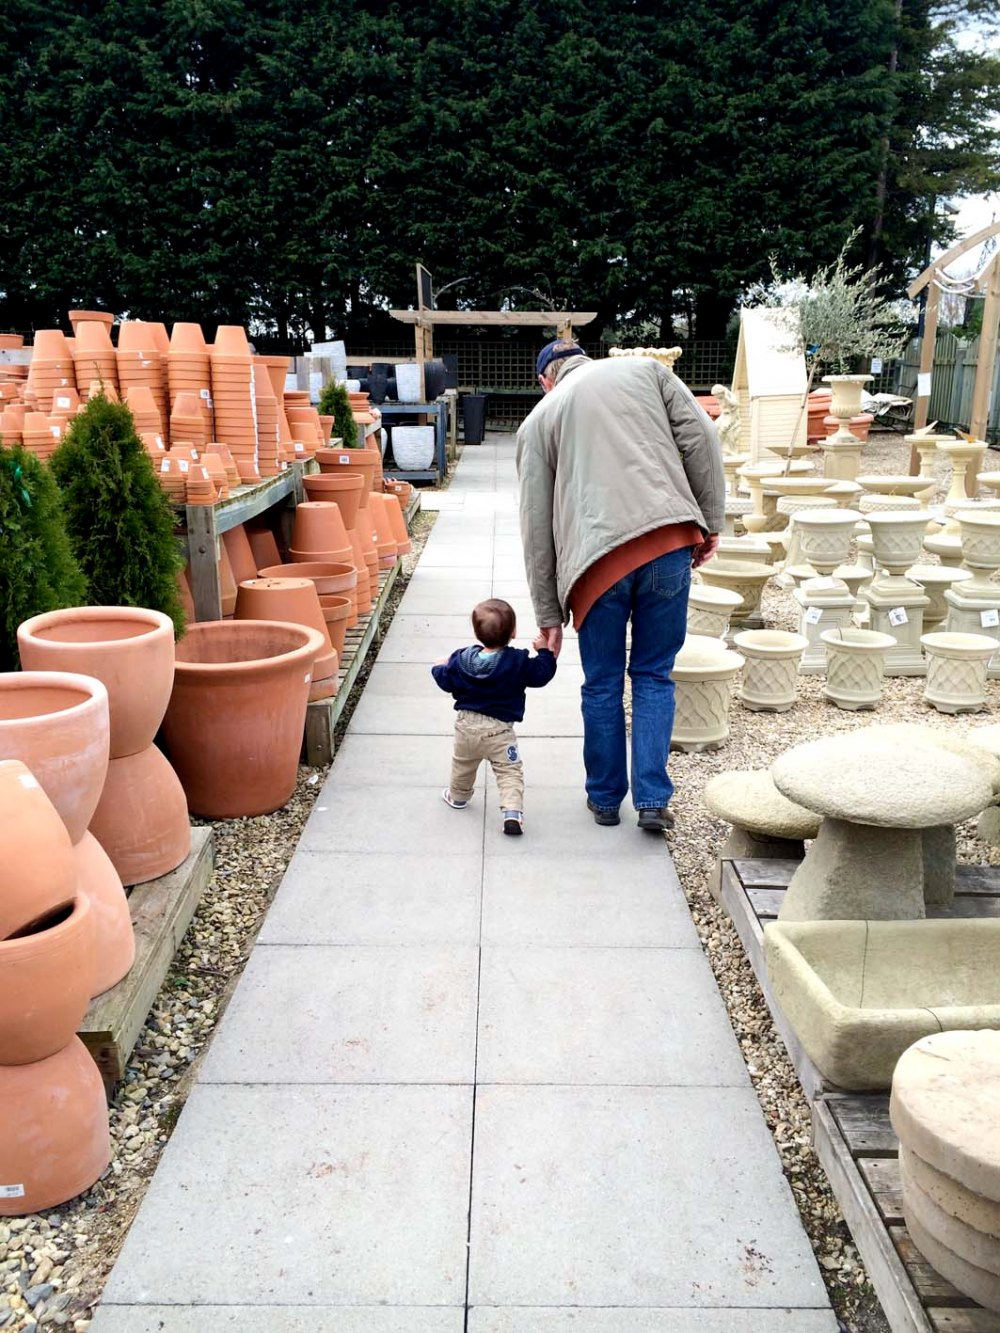 Bufordgardencentre_14